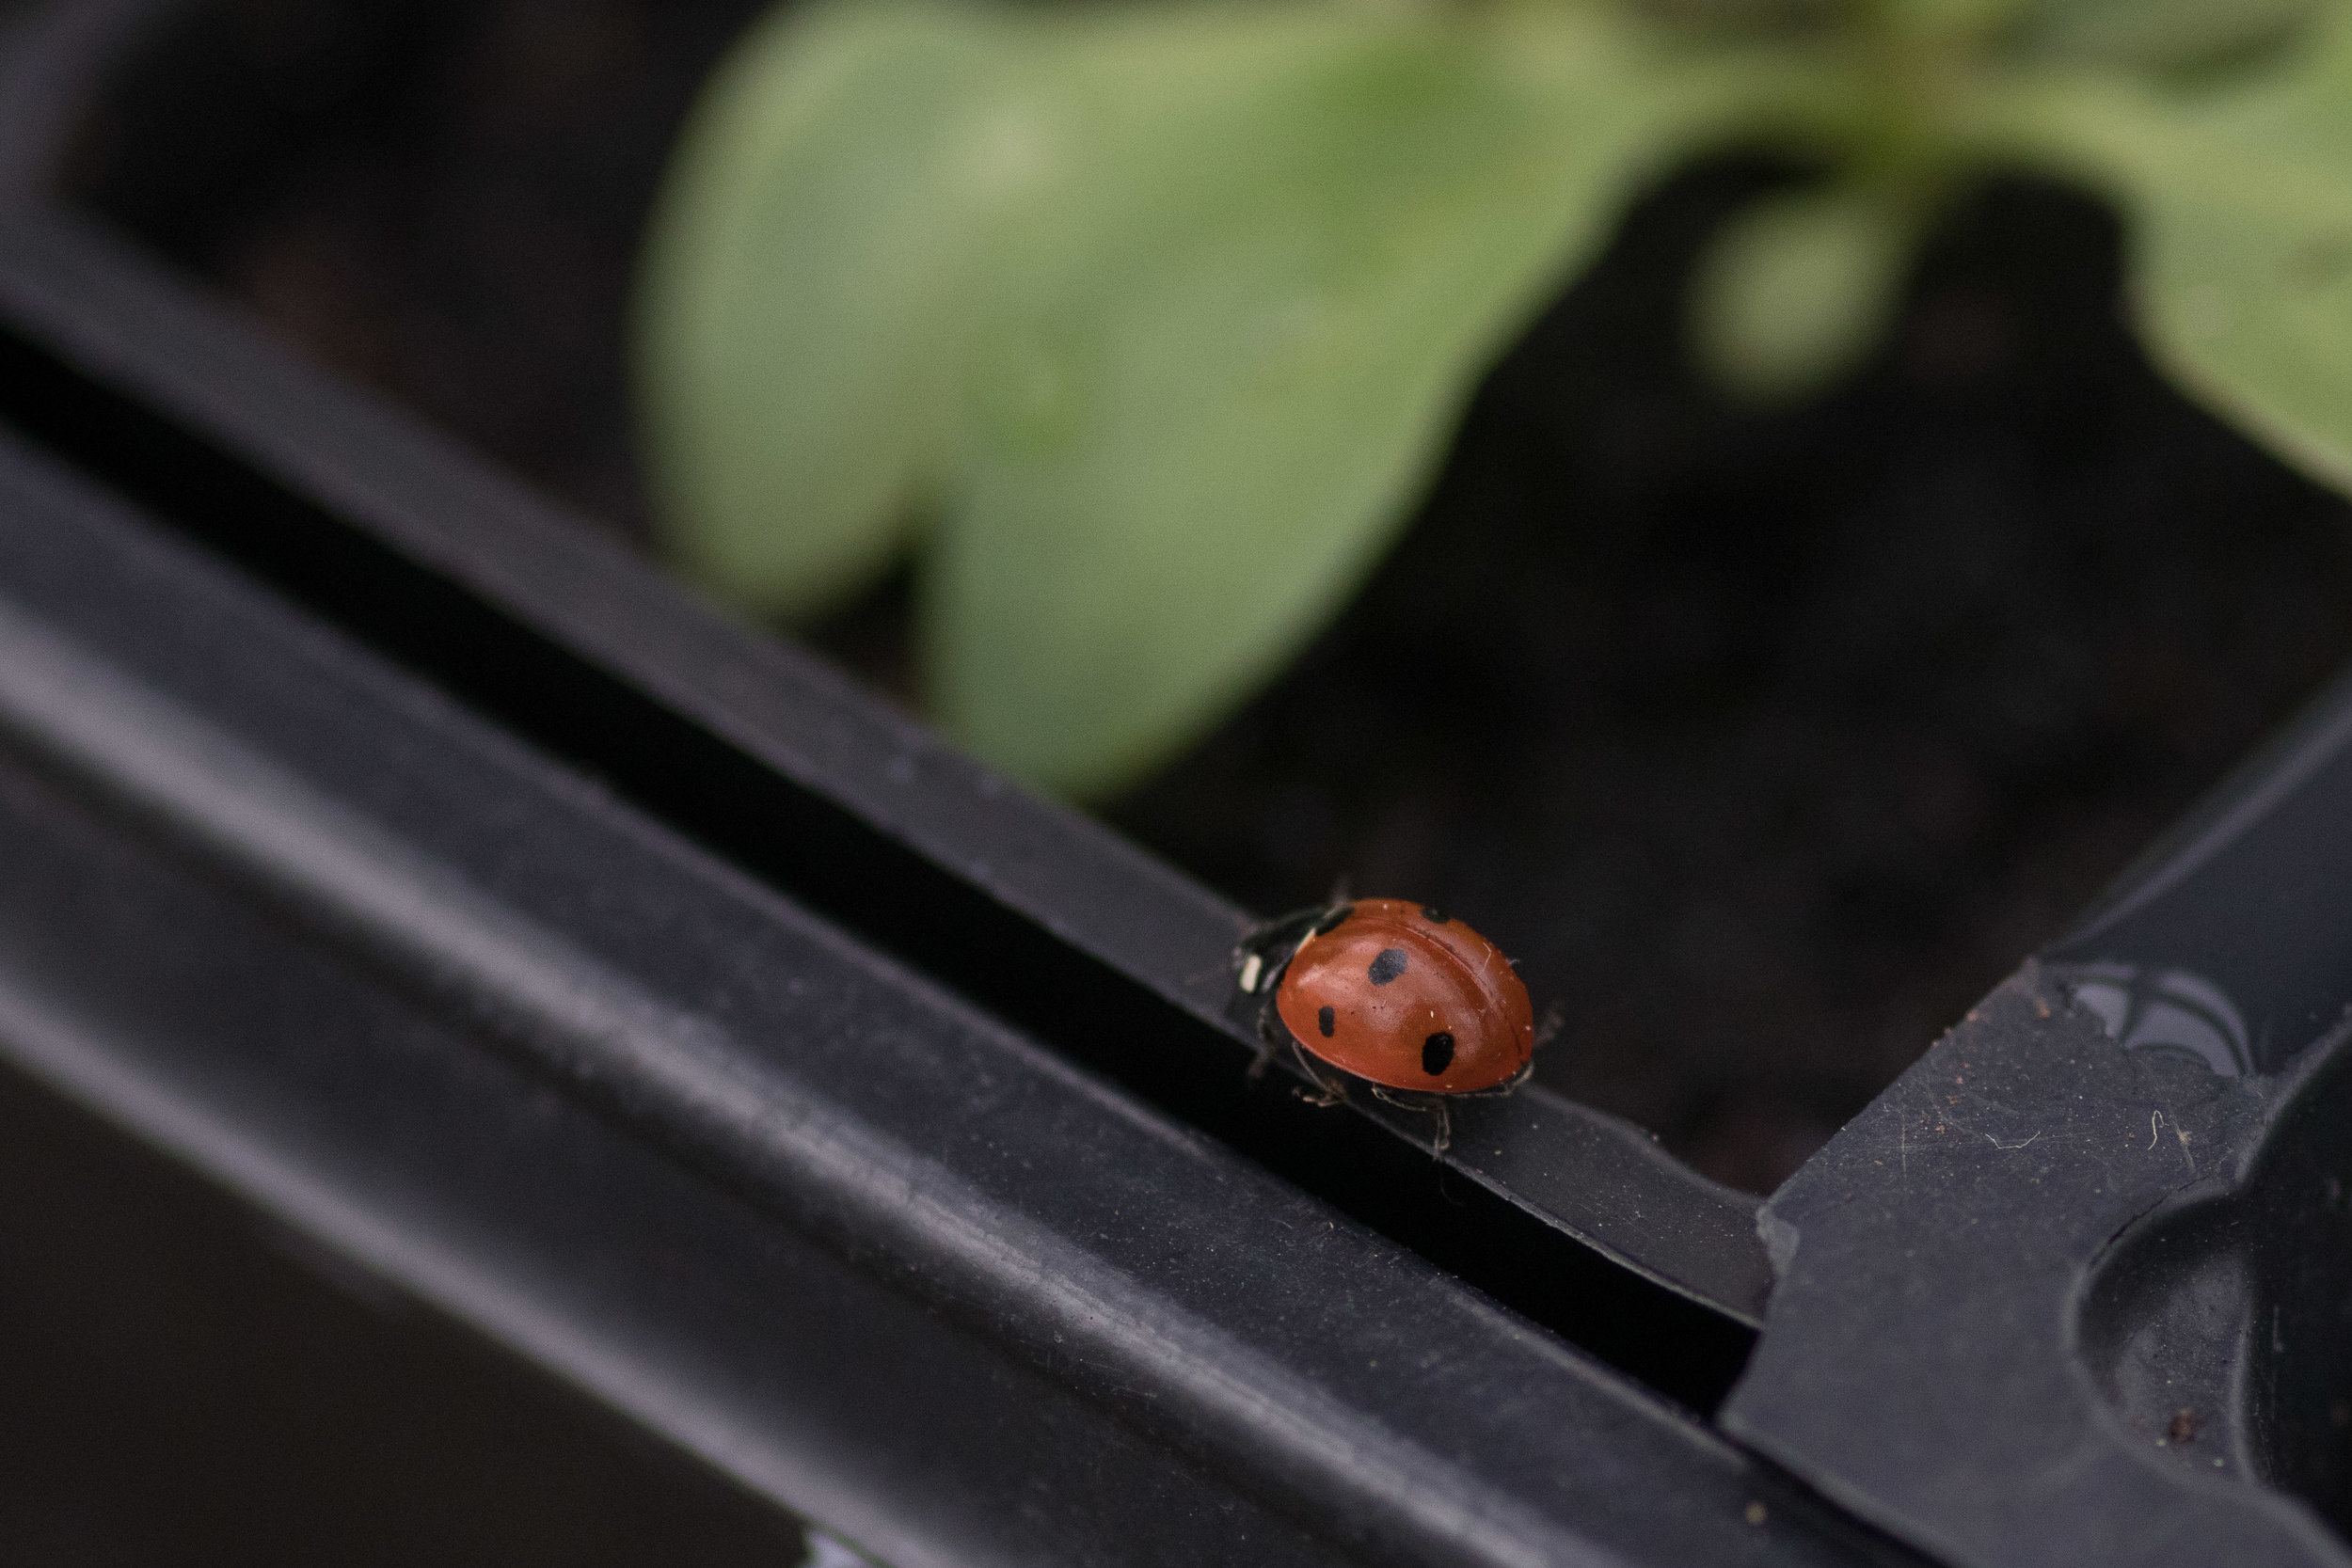 I hope you're heading off to eat more aphids…